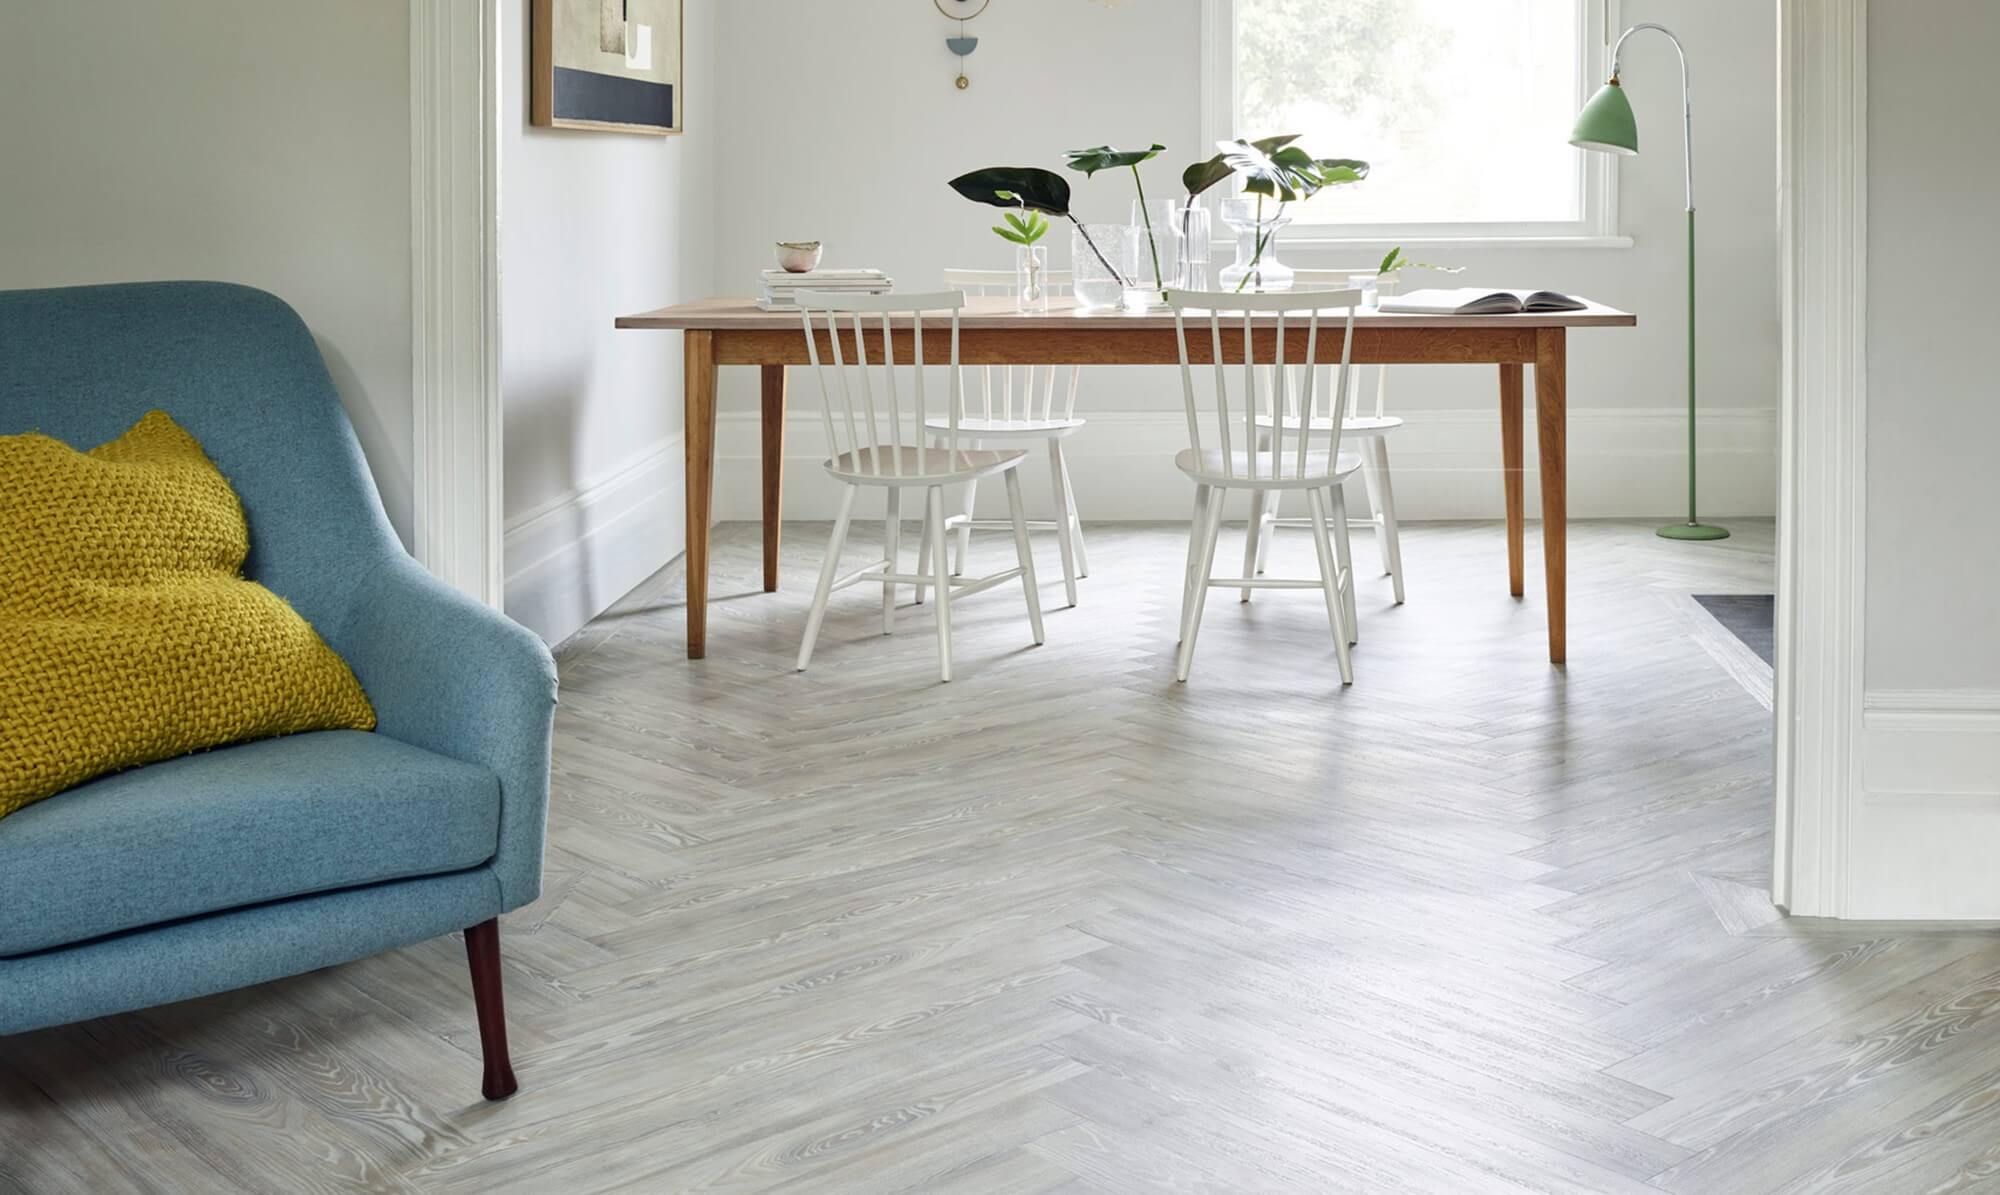 Light wood flooring in family home